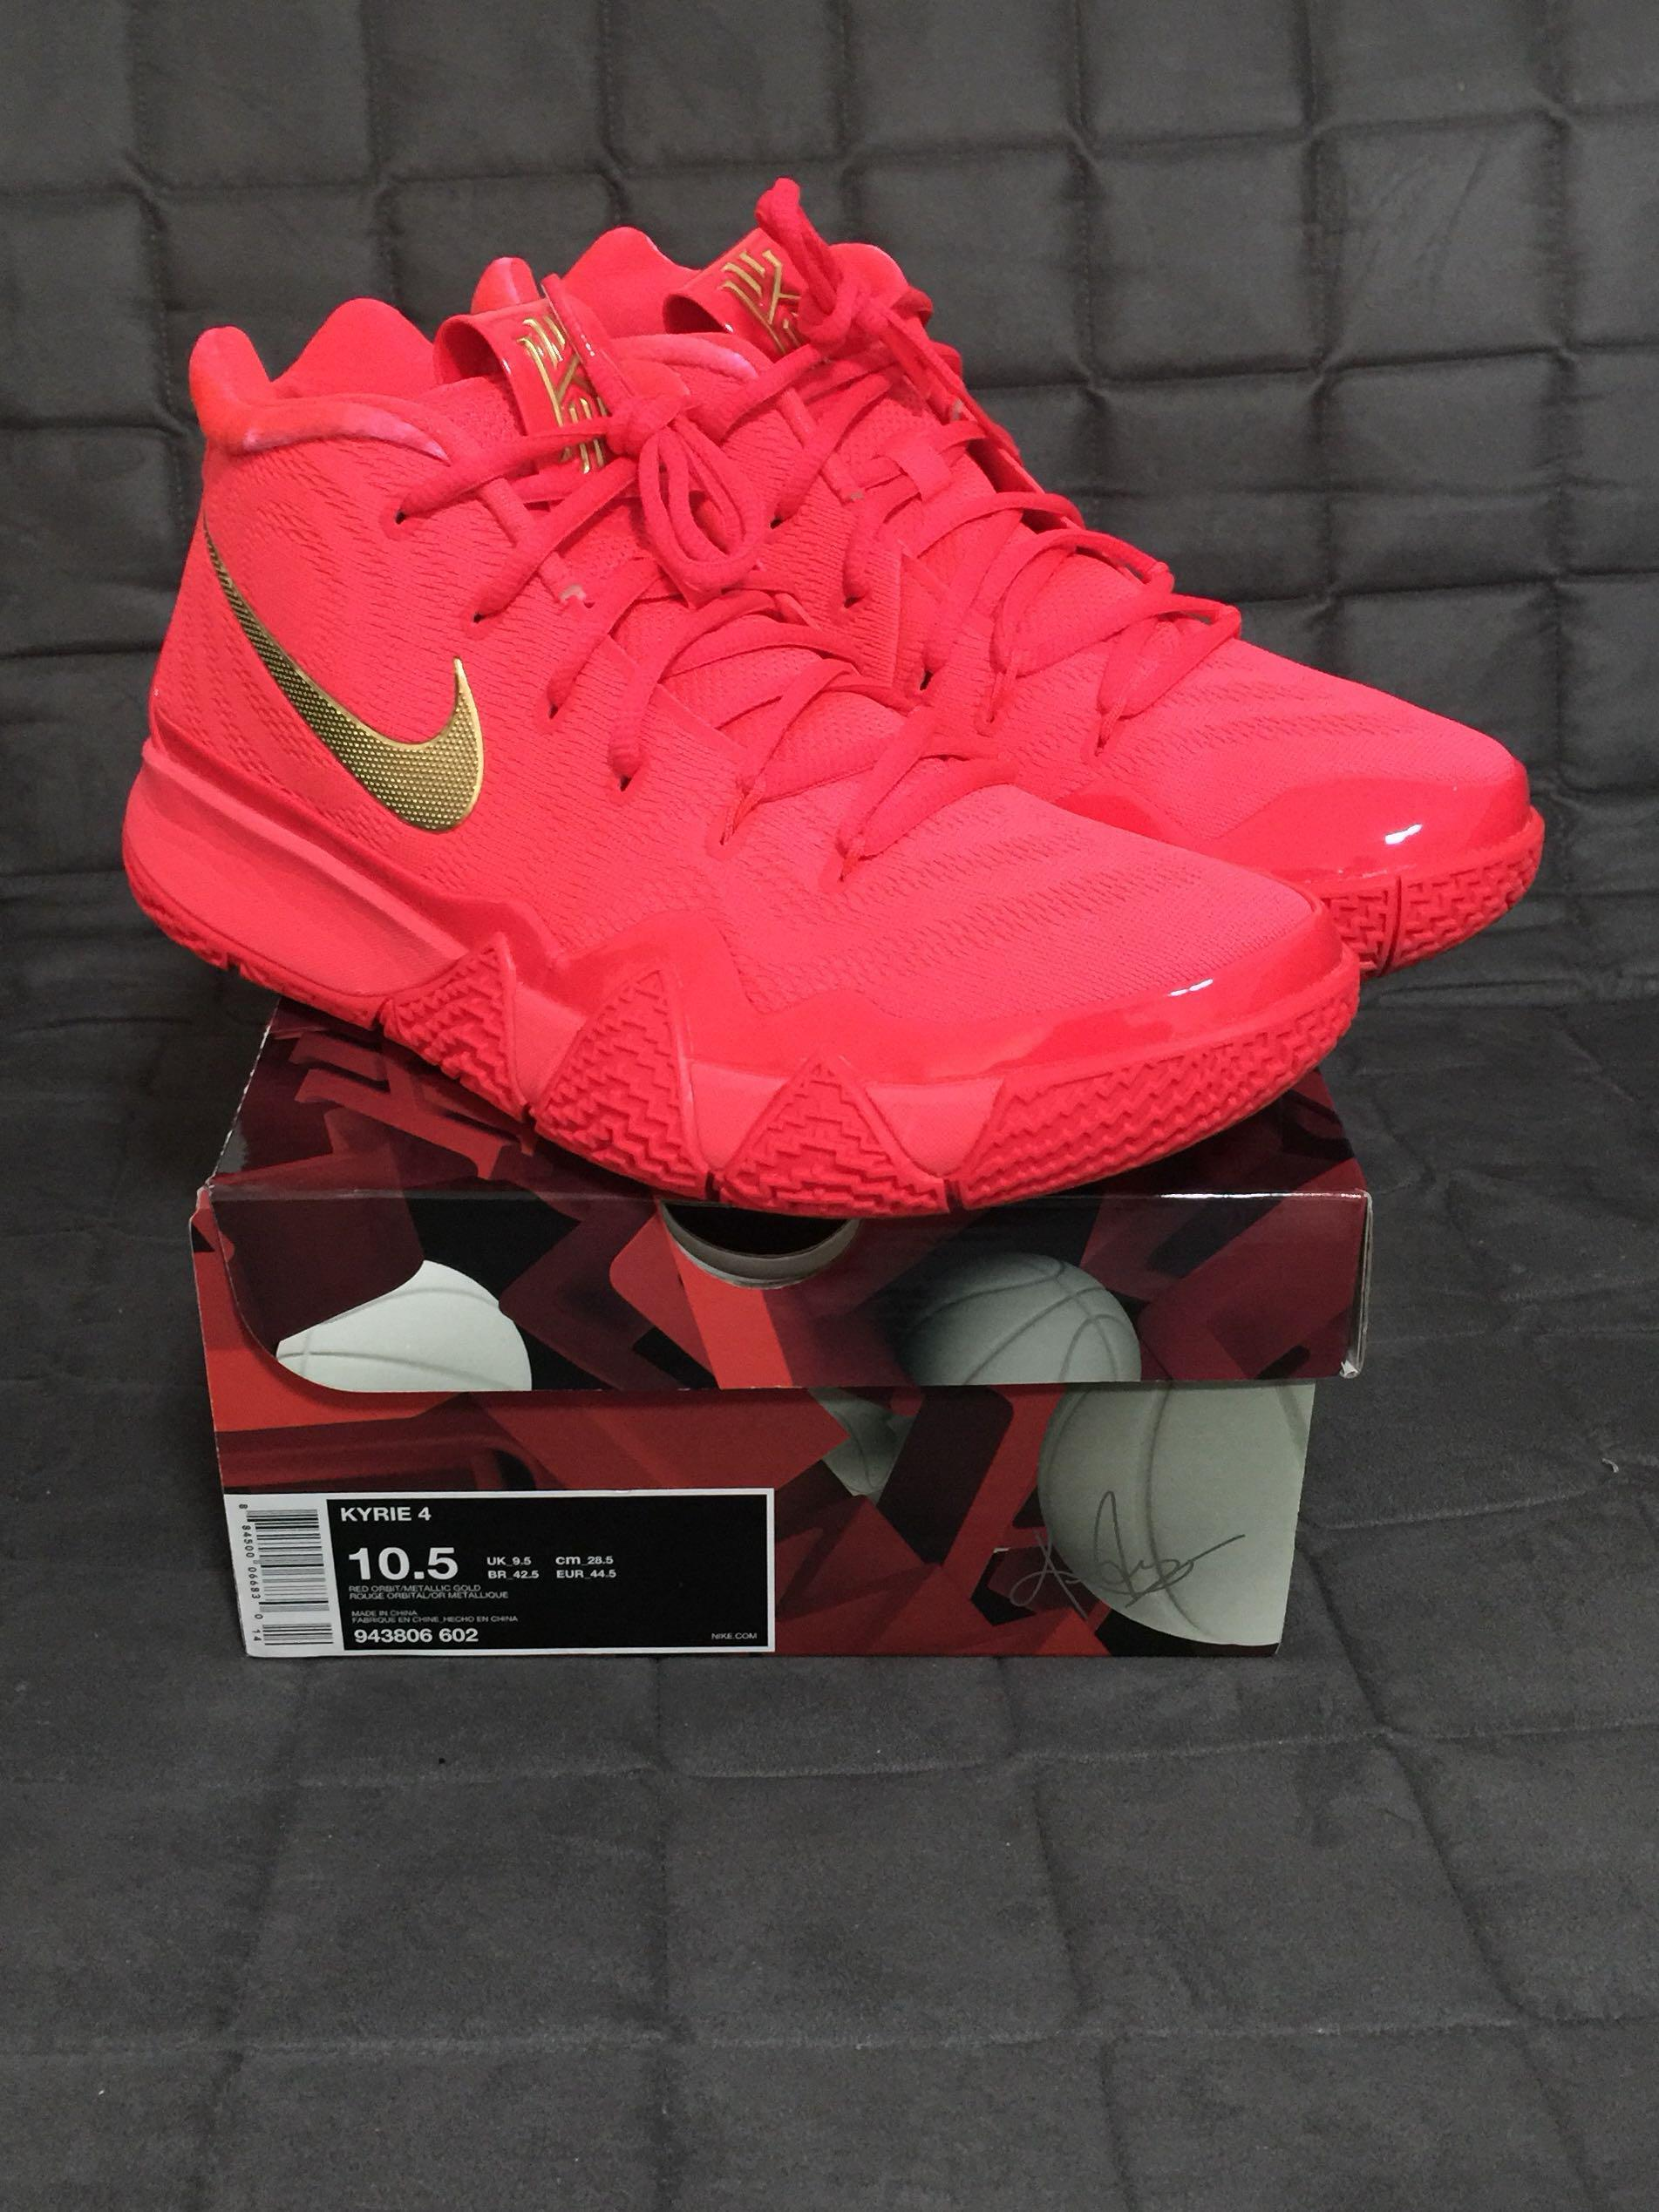 kyrie 4 size 10.5